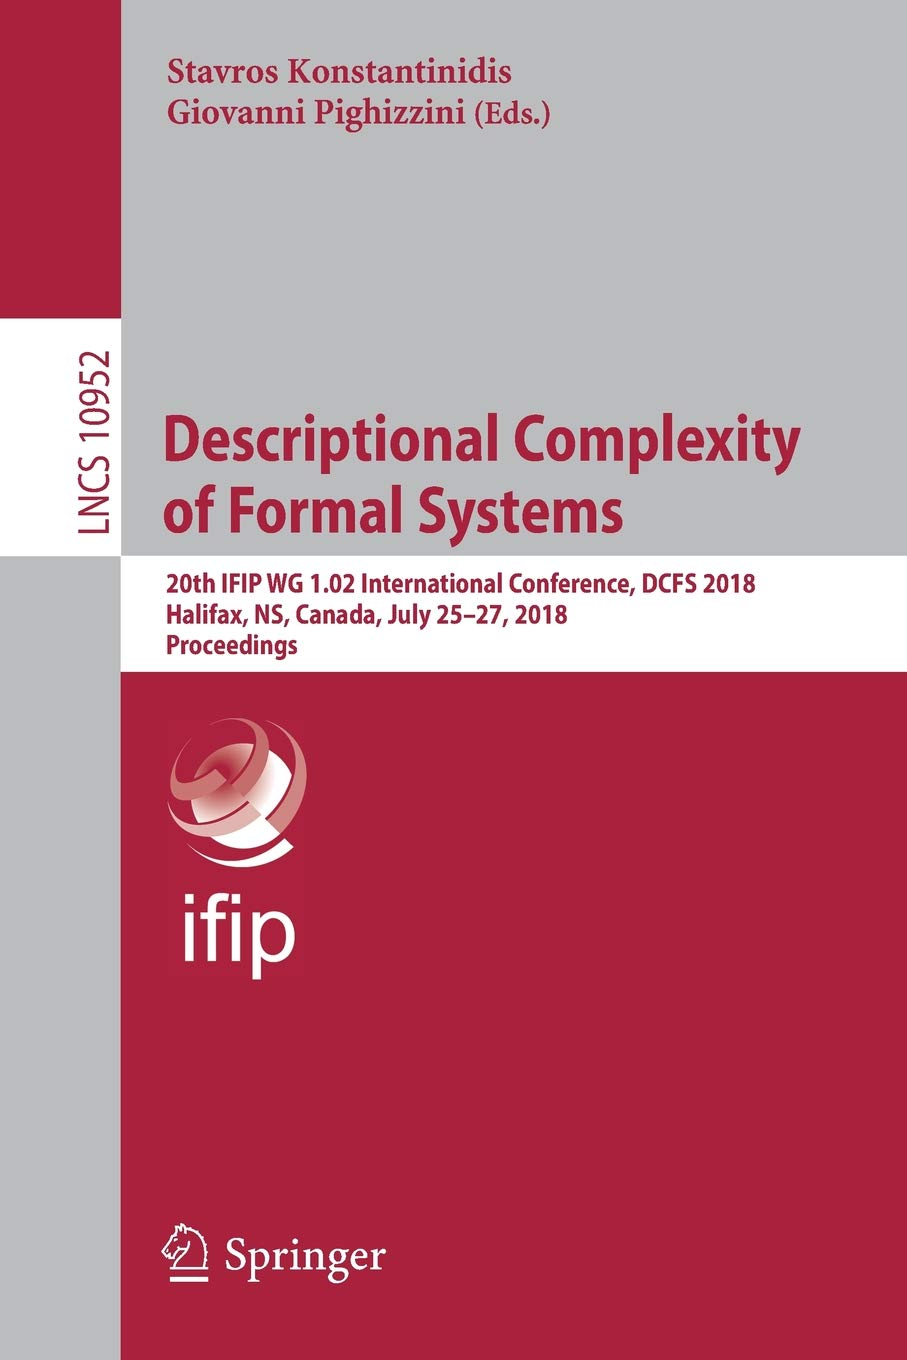 Descriptional Complexity of Formal Systems: 20th IFIP WG 1.02 International Conference, DCFS 2018, Halifax, NS, Canada, July 25–27, 2018, Proceedings (Lecture Notes in Computer Science) pdf